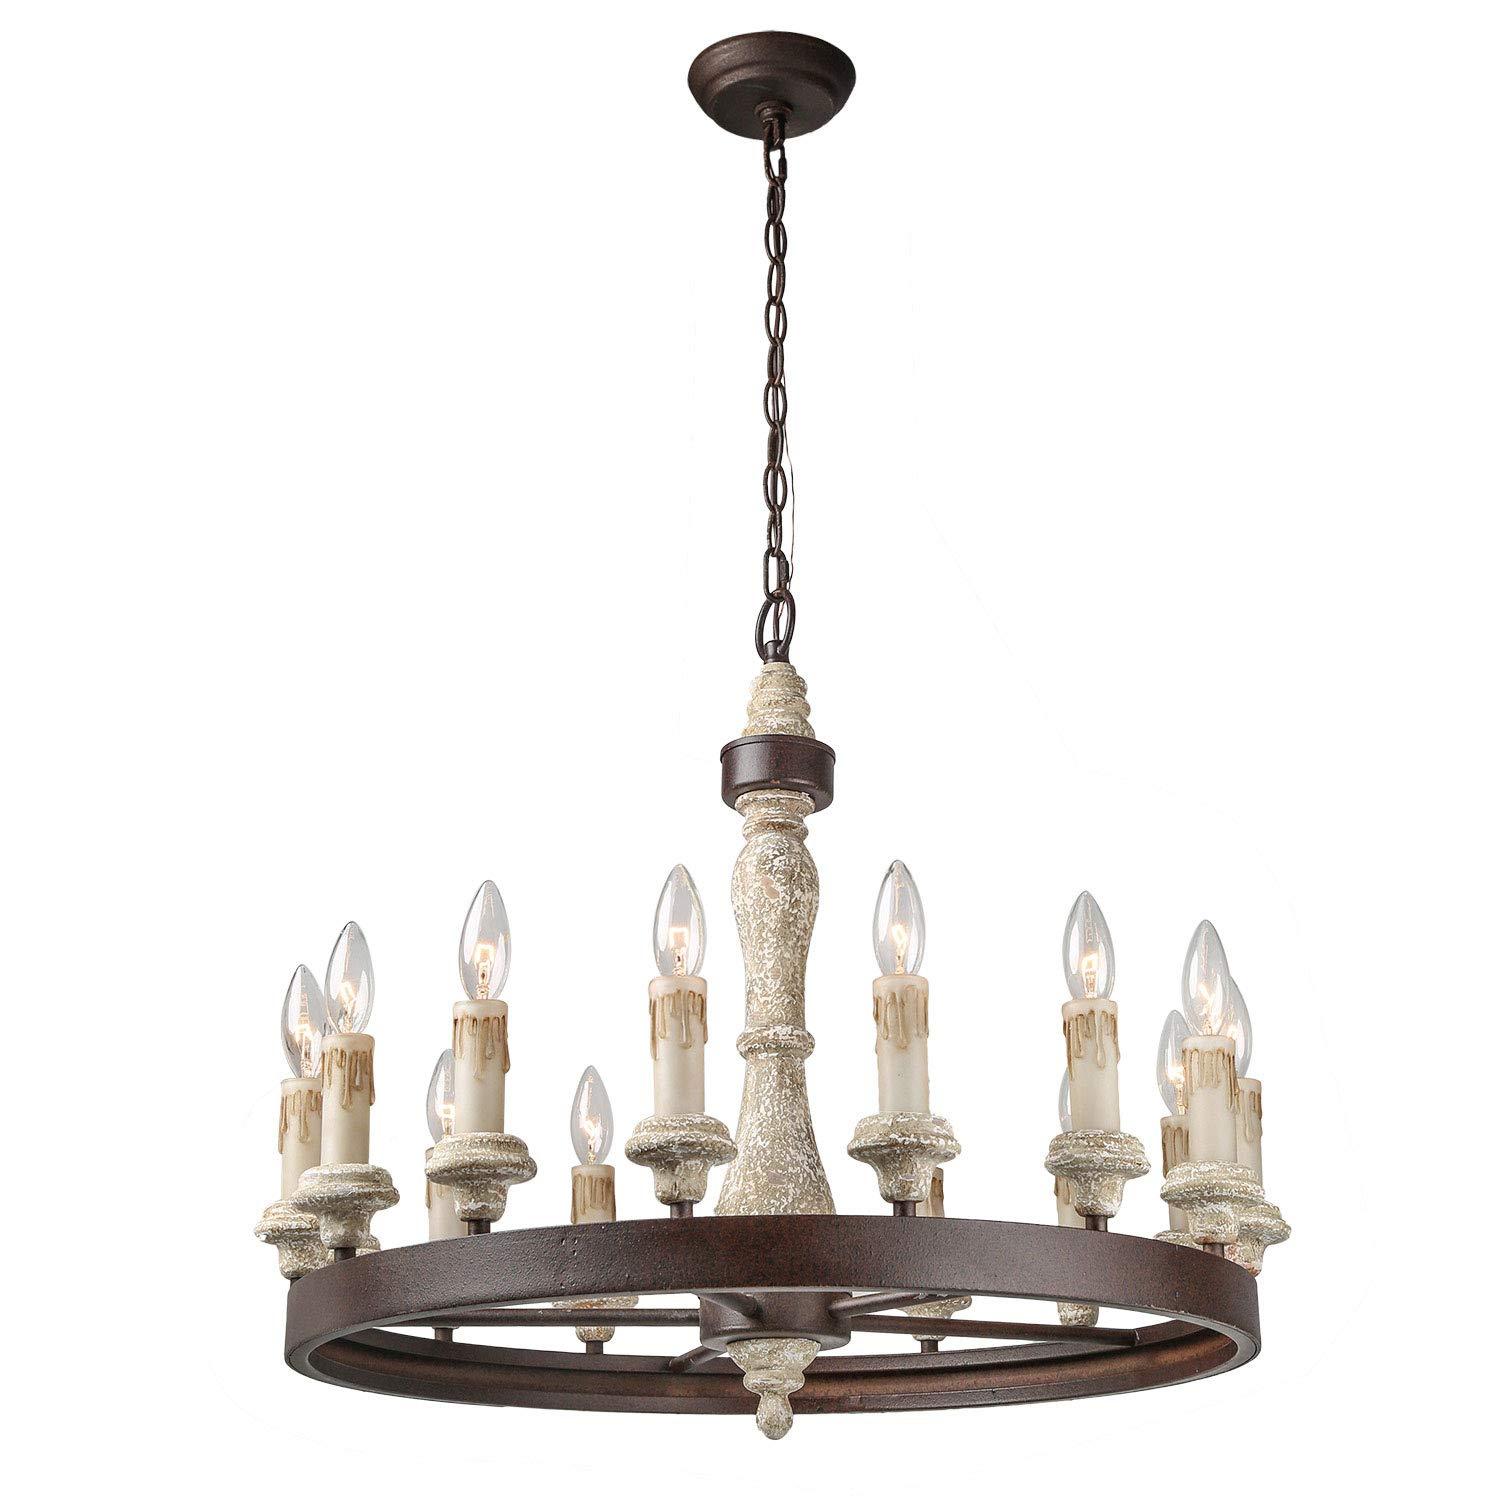 LNC 15-Lights French Country Shabby Chic Chandeliers Wood Chandelier Lighting,White 3298